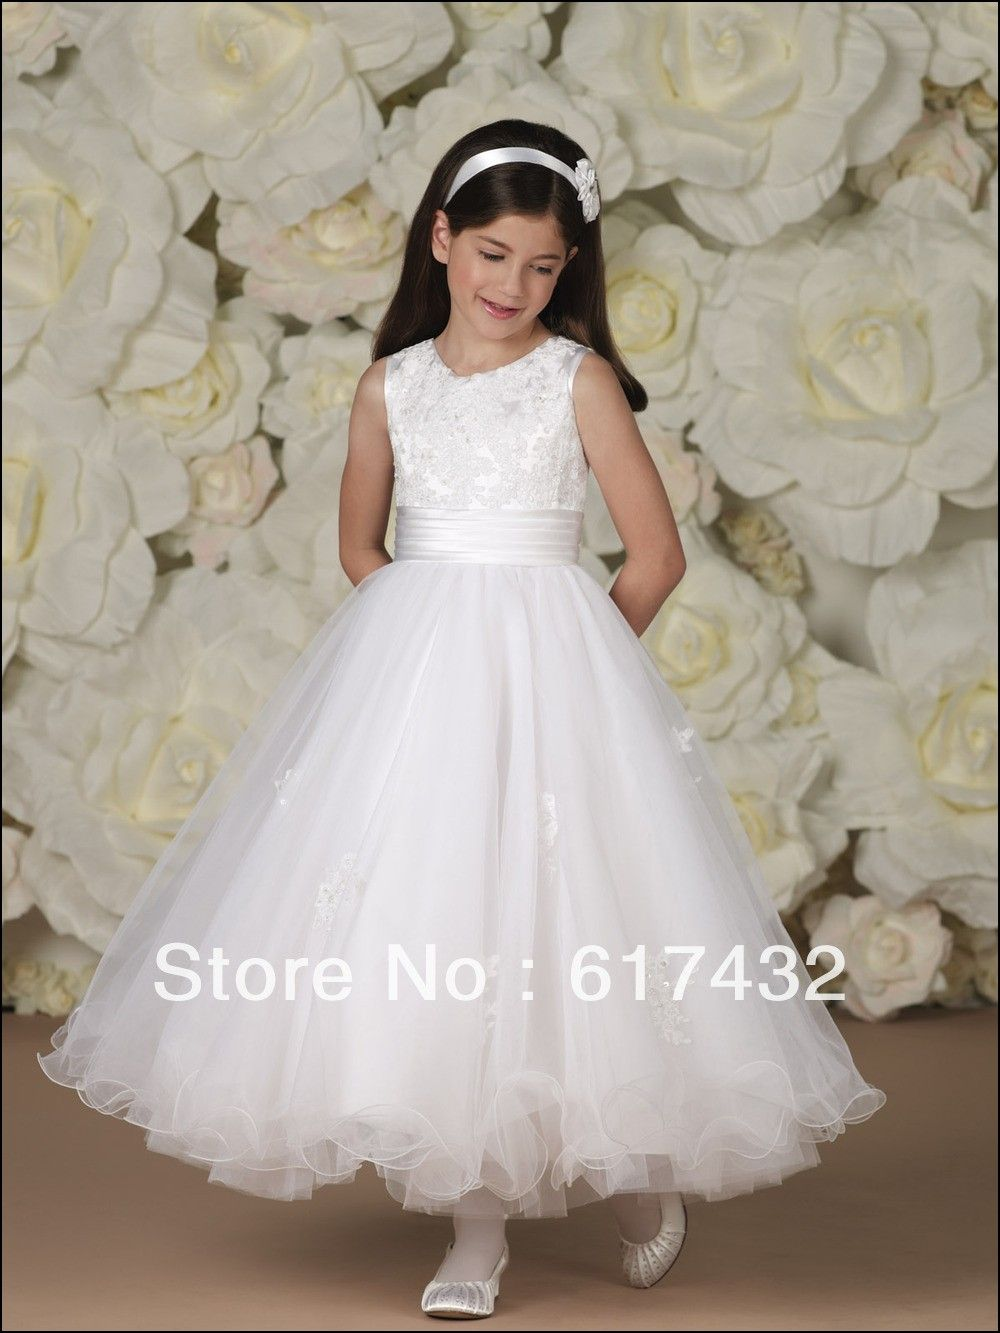 Girls bridesmaid dress patterns dresses and gowns ideas girls bridesmaid dress patterns ombrellifo Gallery